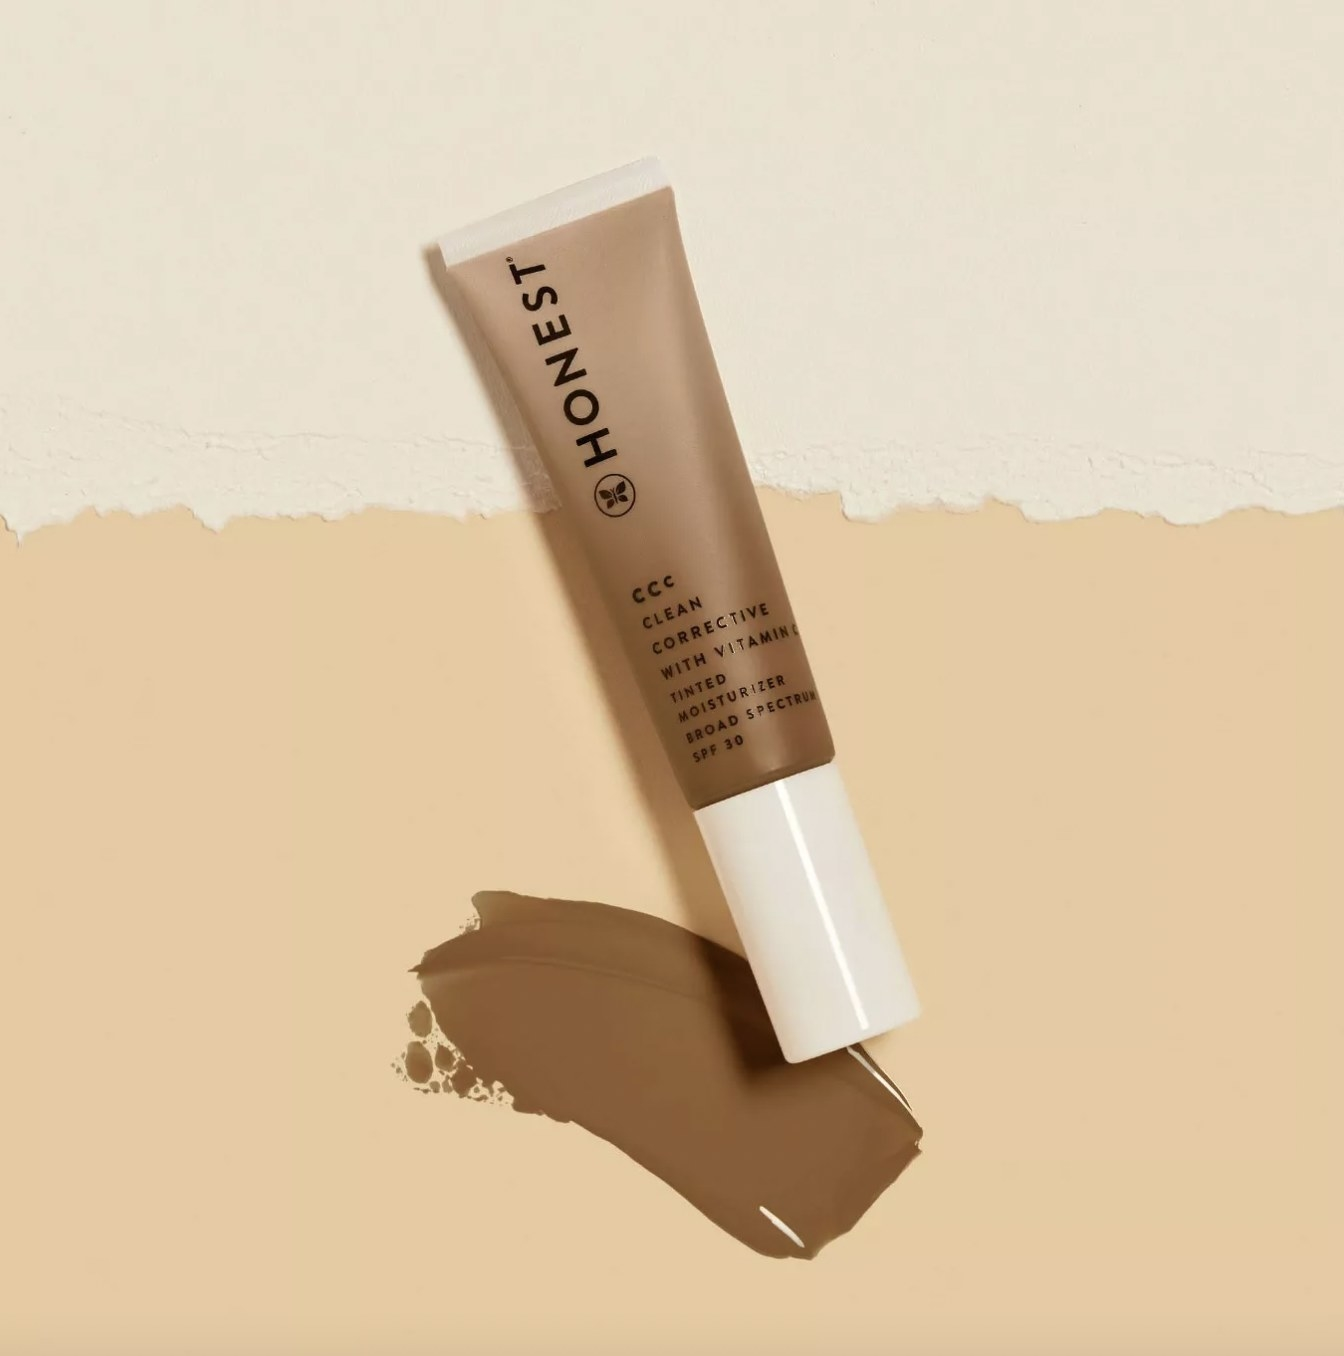 A tube of tinted moisturizer